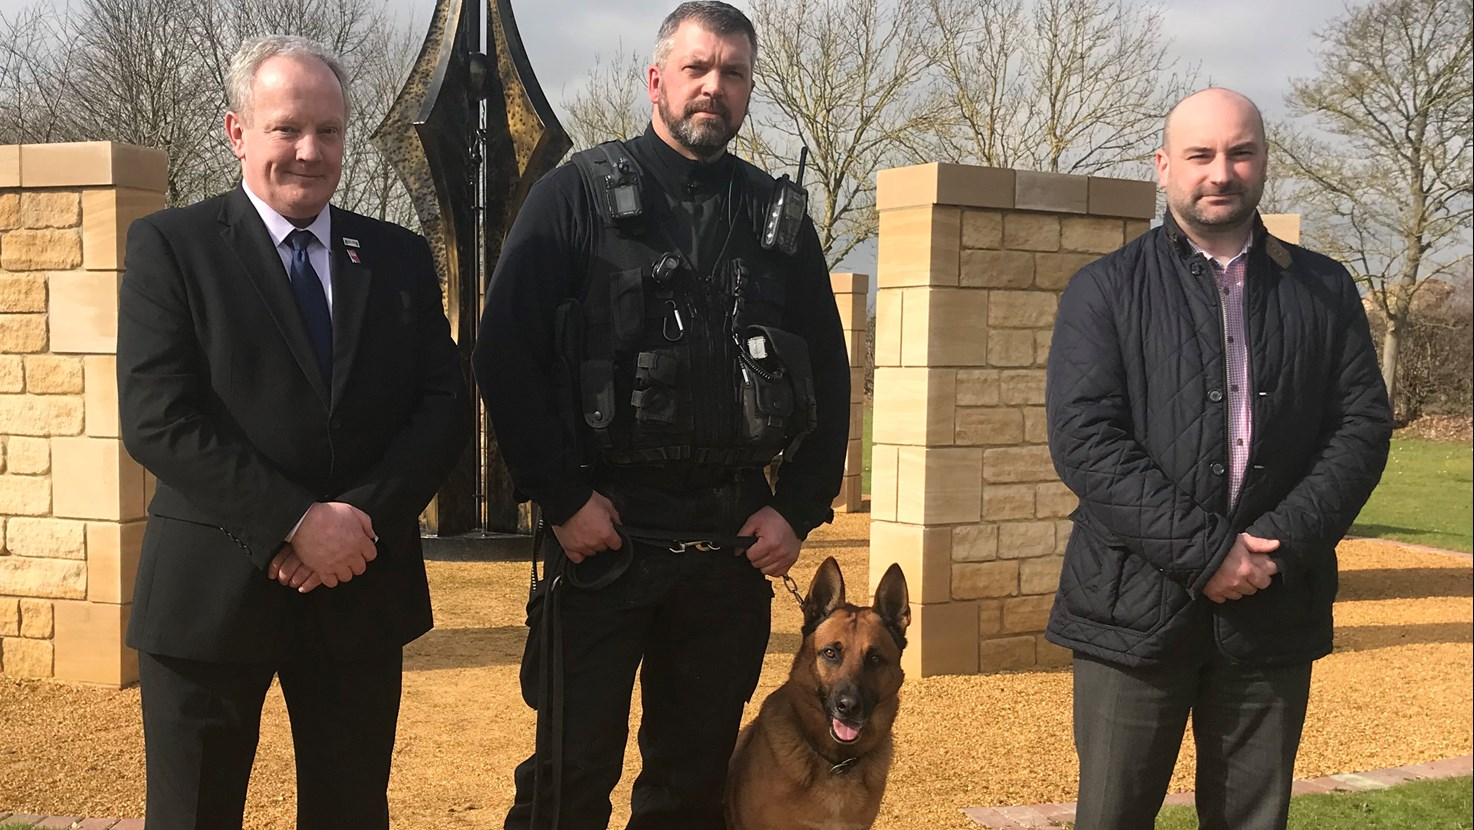 PCC backs the creation of new laws designed to protect police officers and their dogs